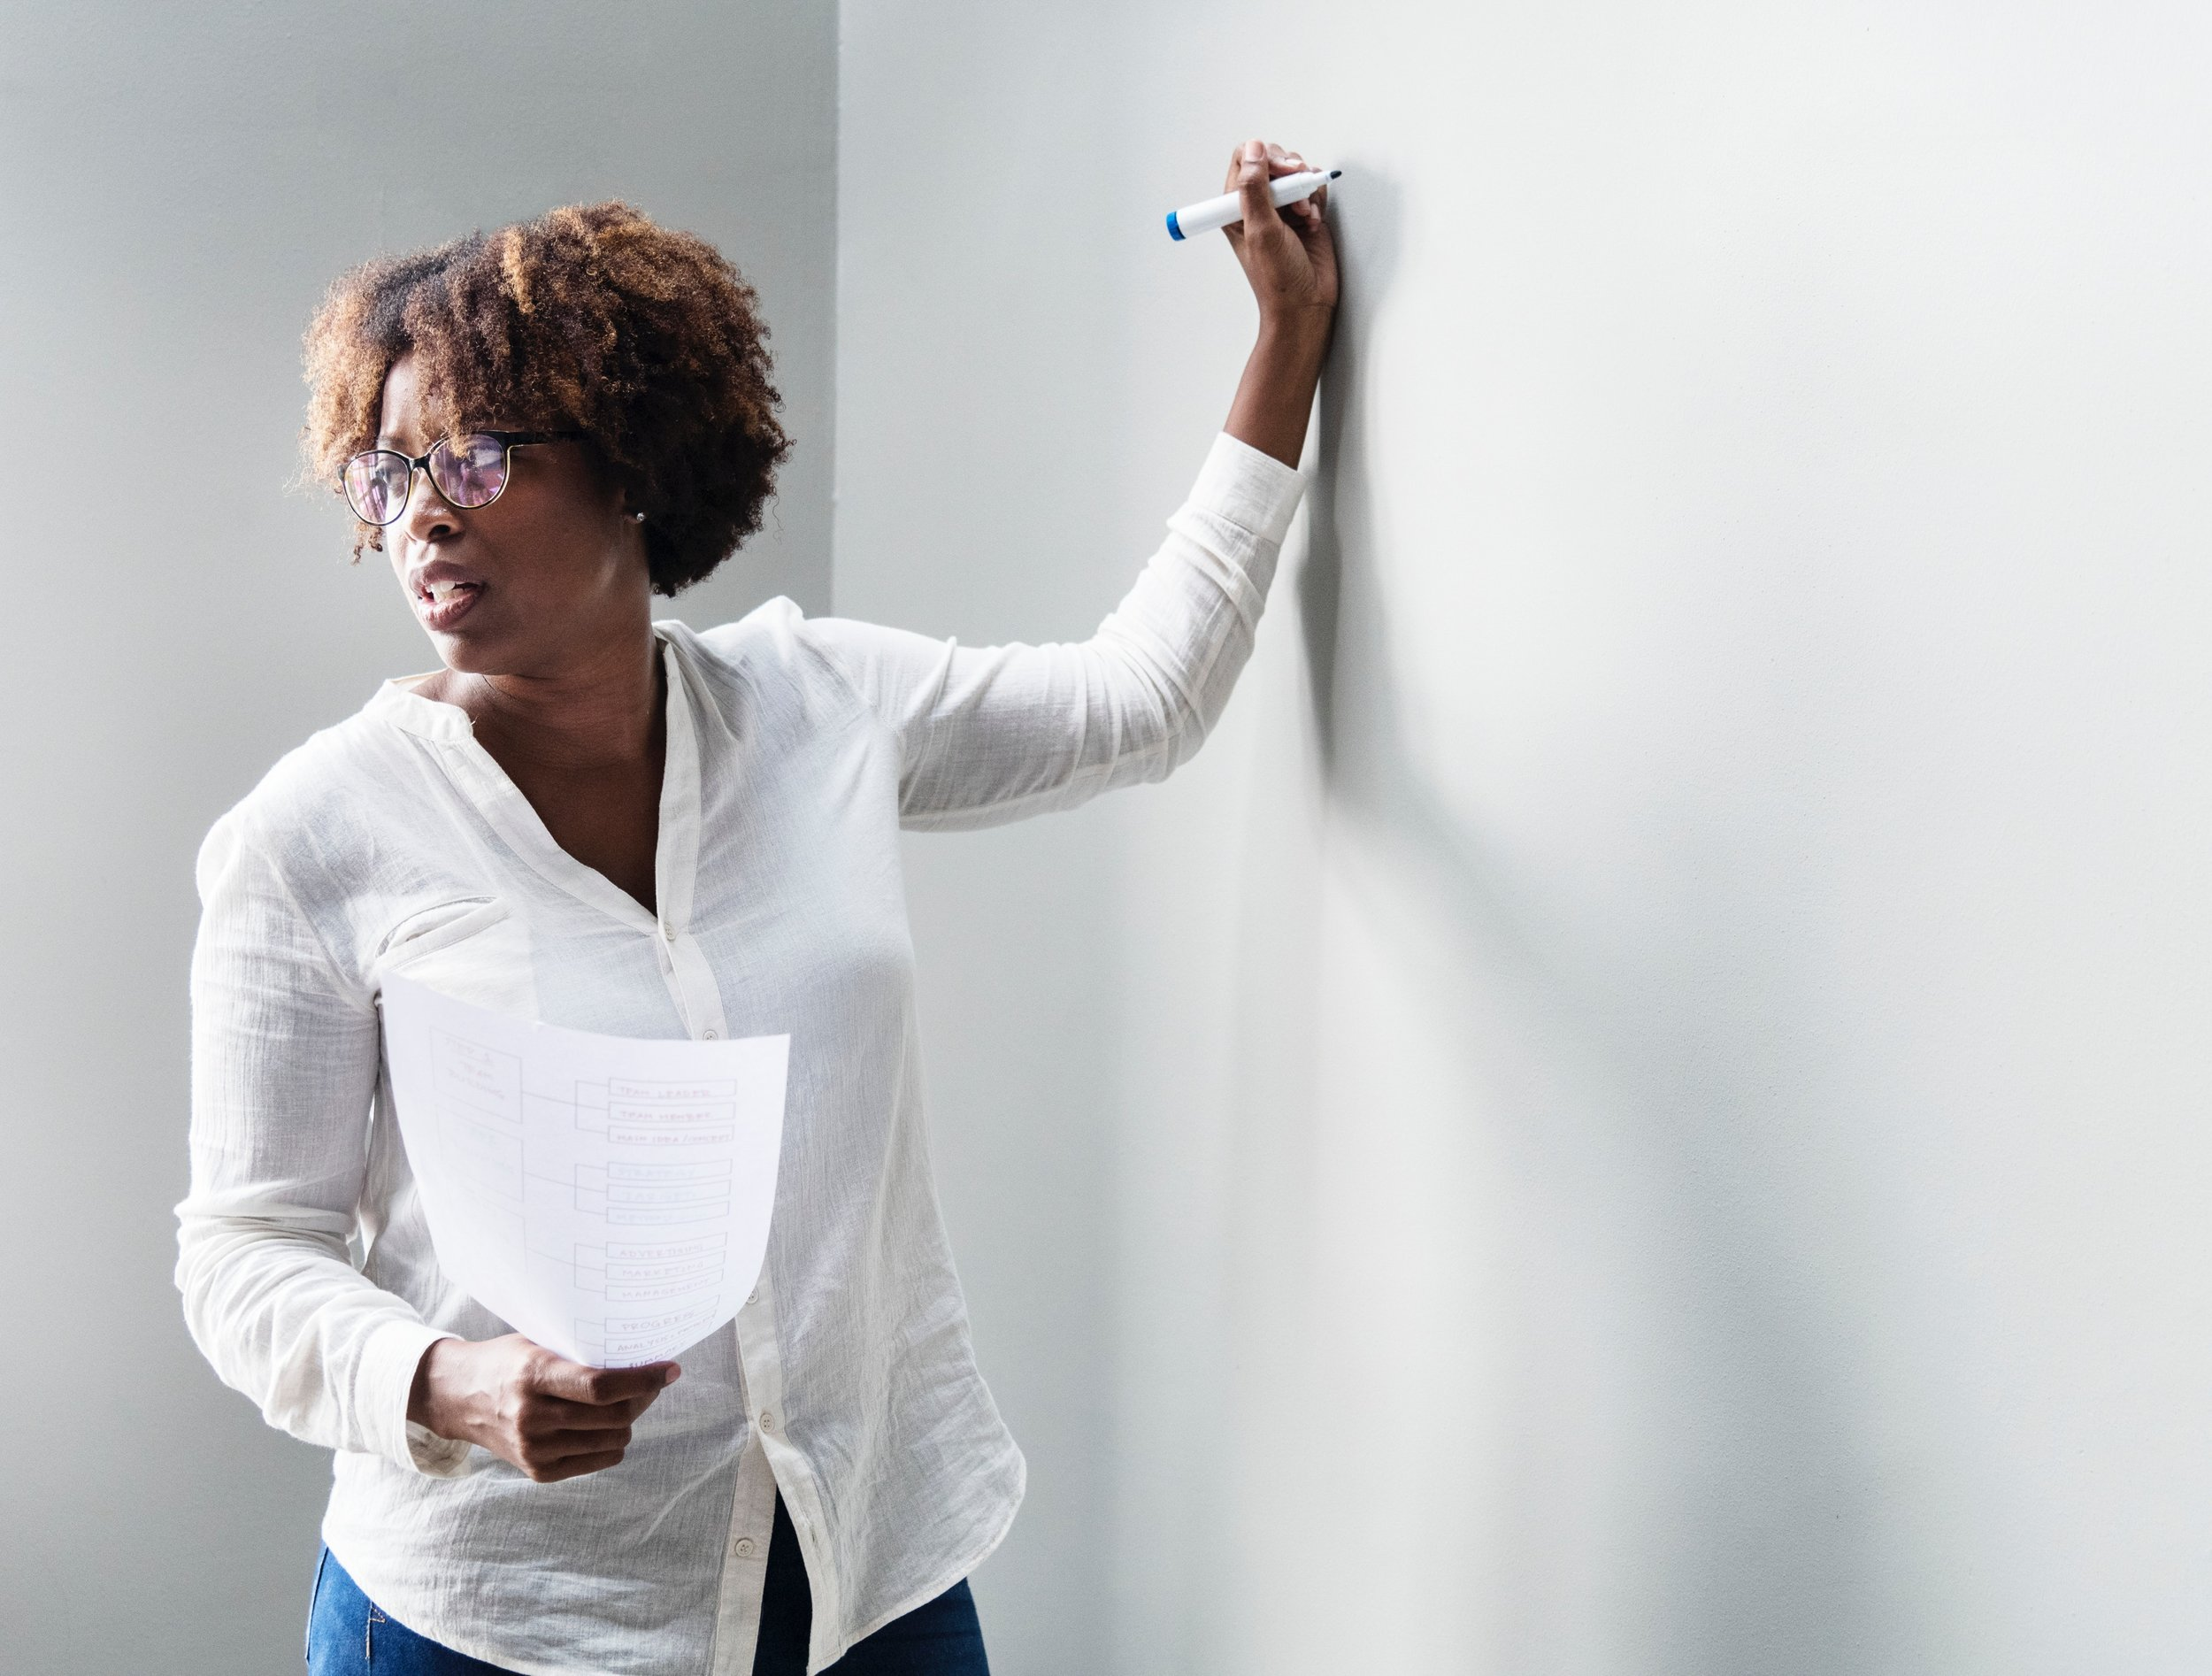 Professional Development Offerings - One World Consulting can support schools to better cultivate and equip educators with the knowledge and tools to improve student outcomes. Check out our list of offerings.